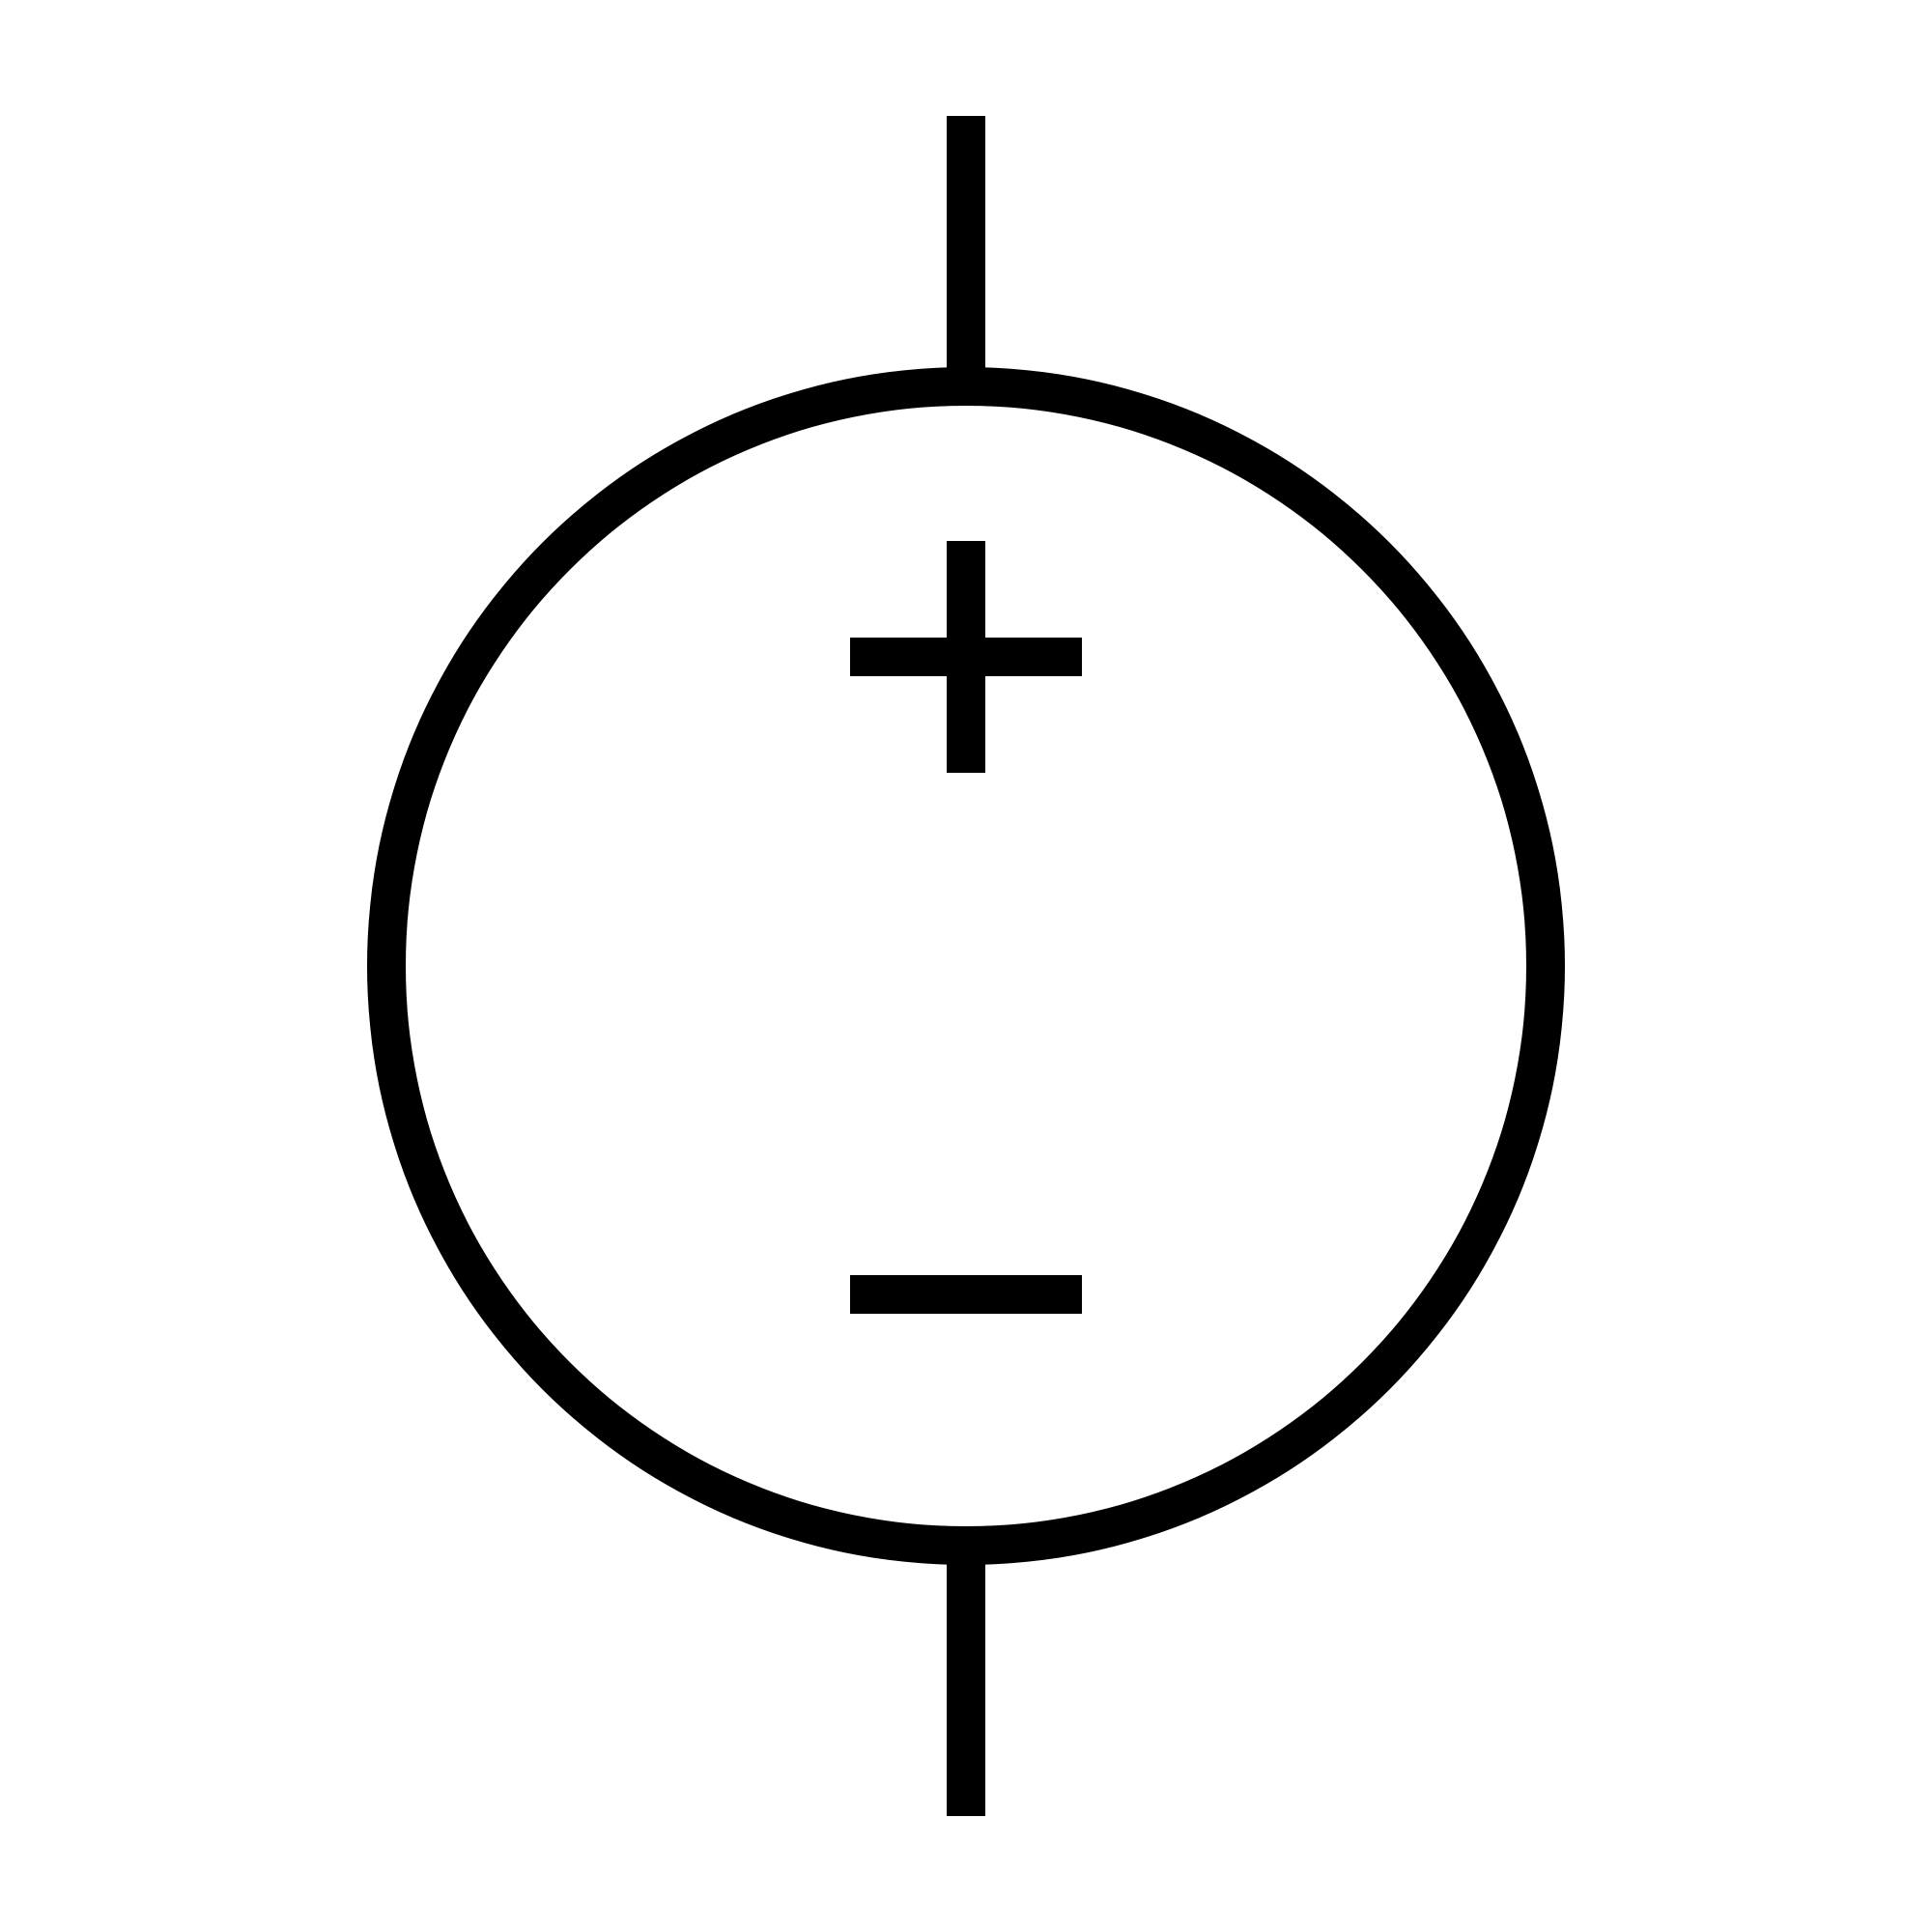 Dc Supply Symbol.